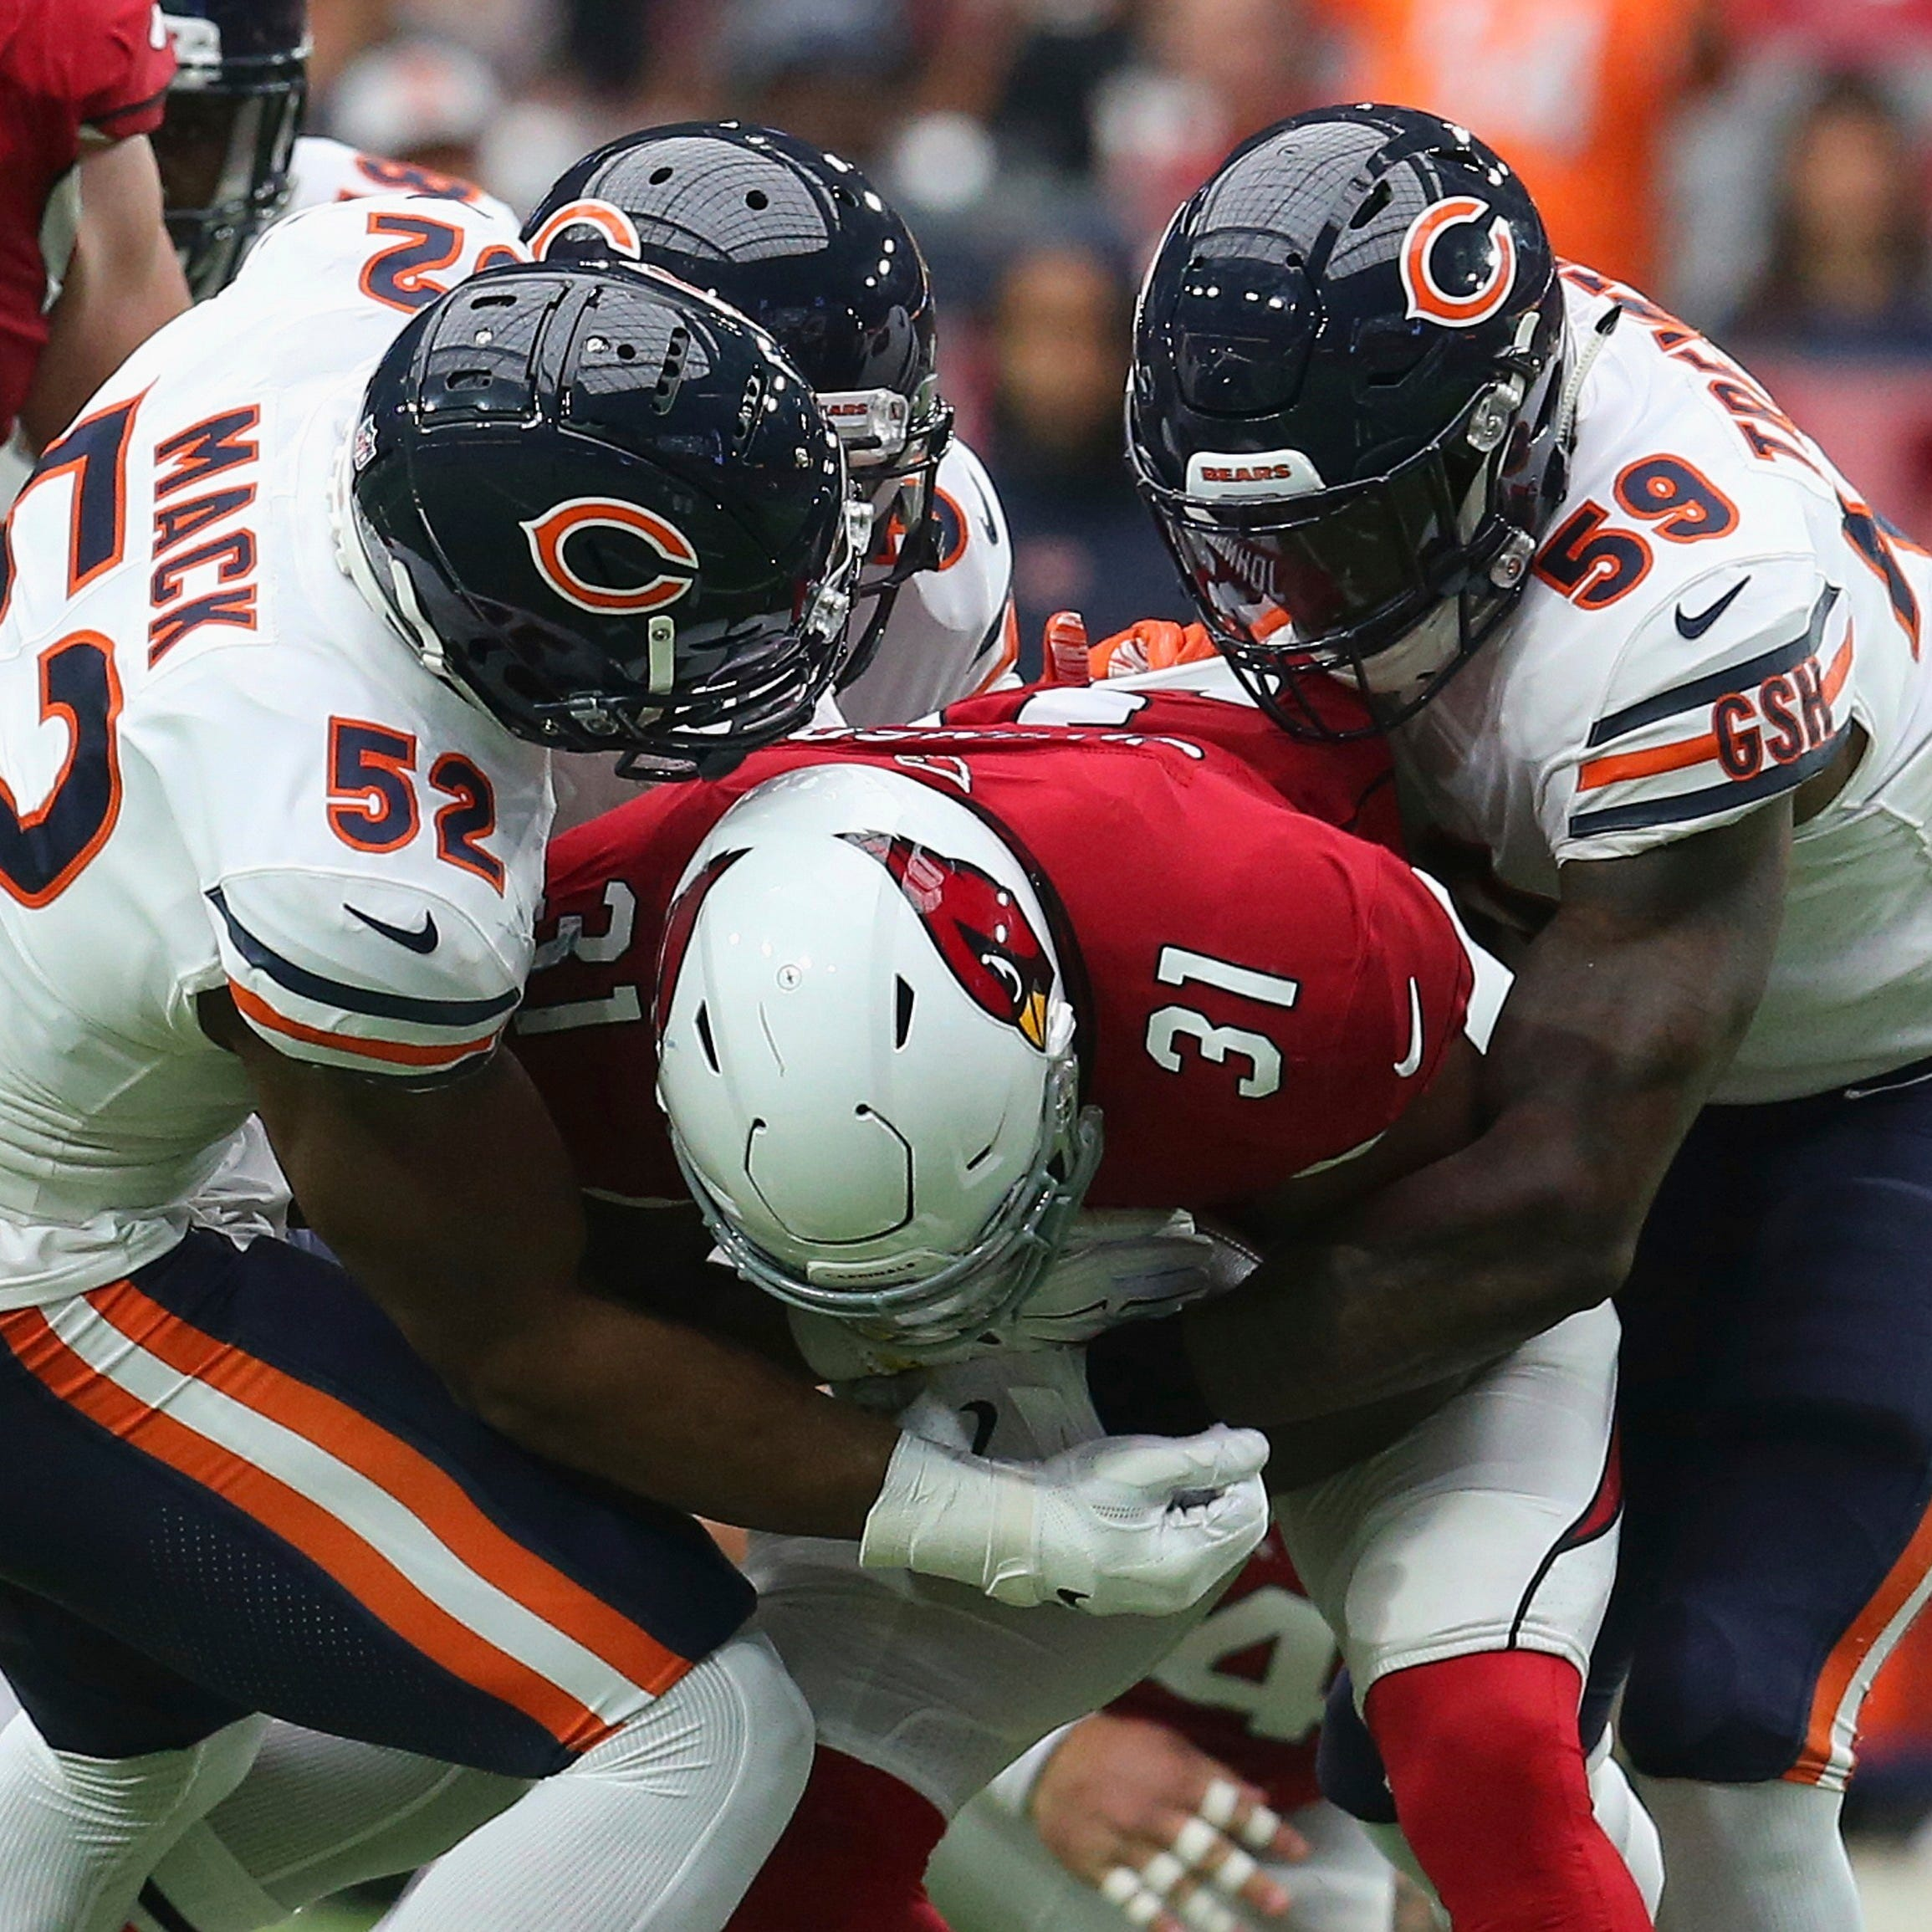 Cardinals turn to Josh Rosen late but can't finish what they started, fall to Bears